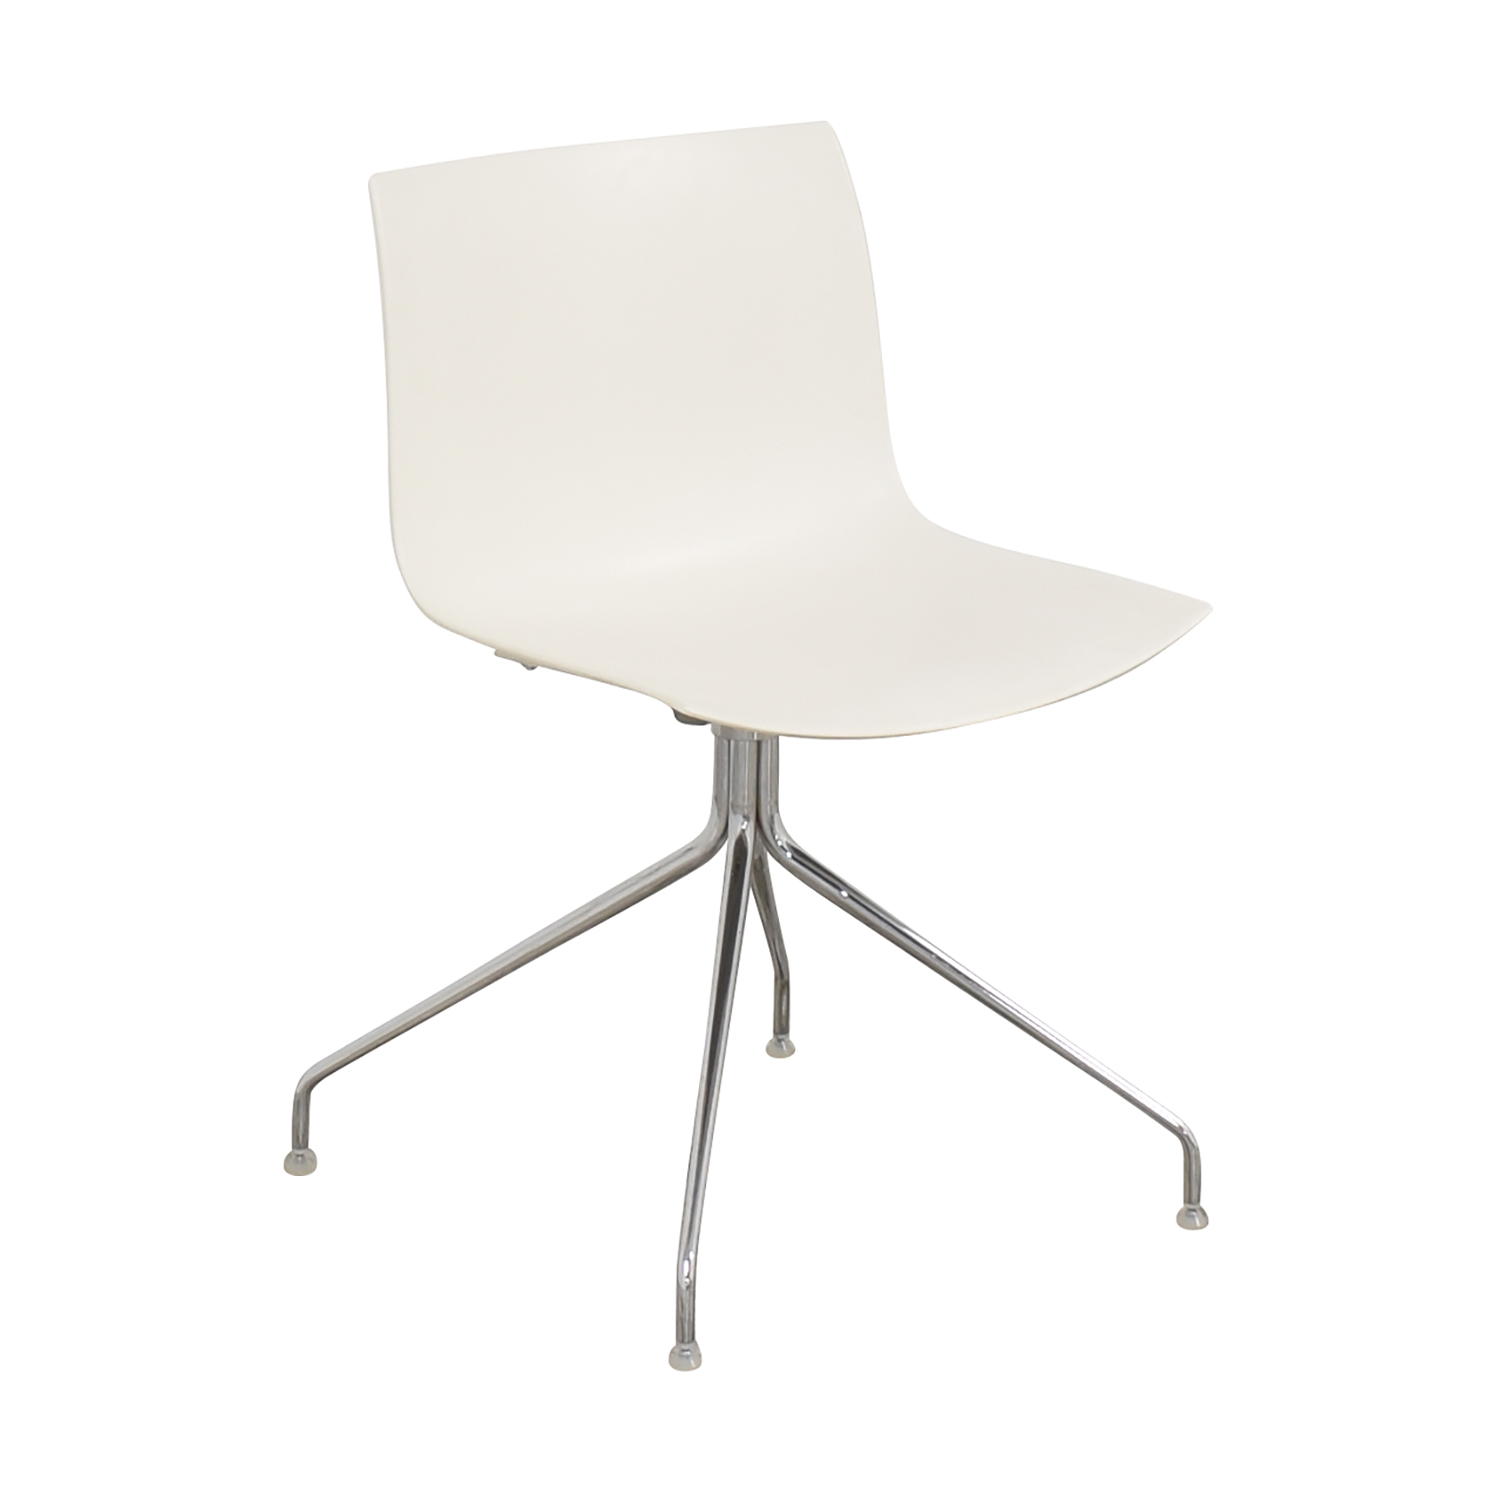 Arper Arper Catifa 46 Trestle Swivel Chair ma